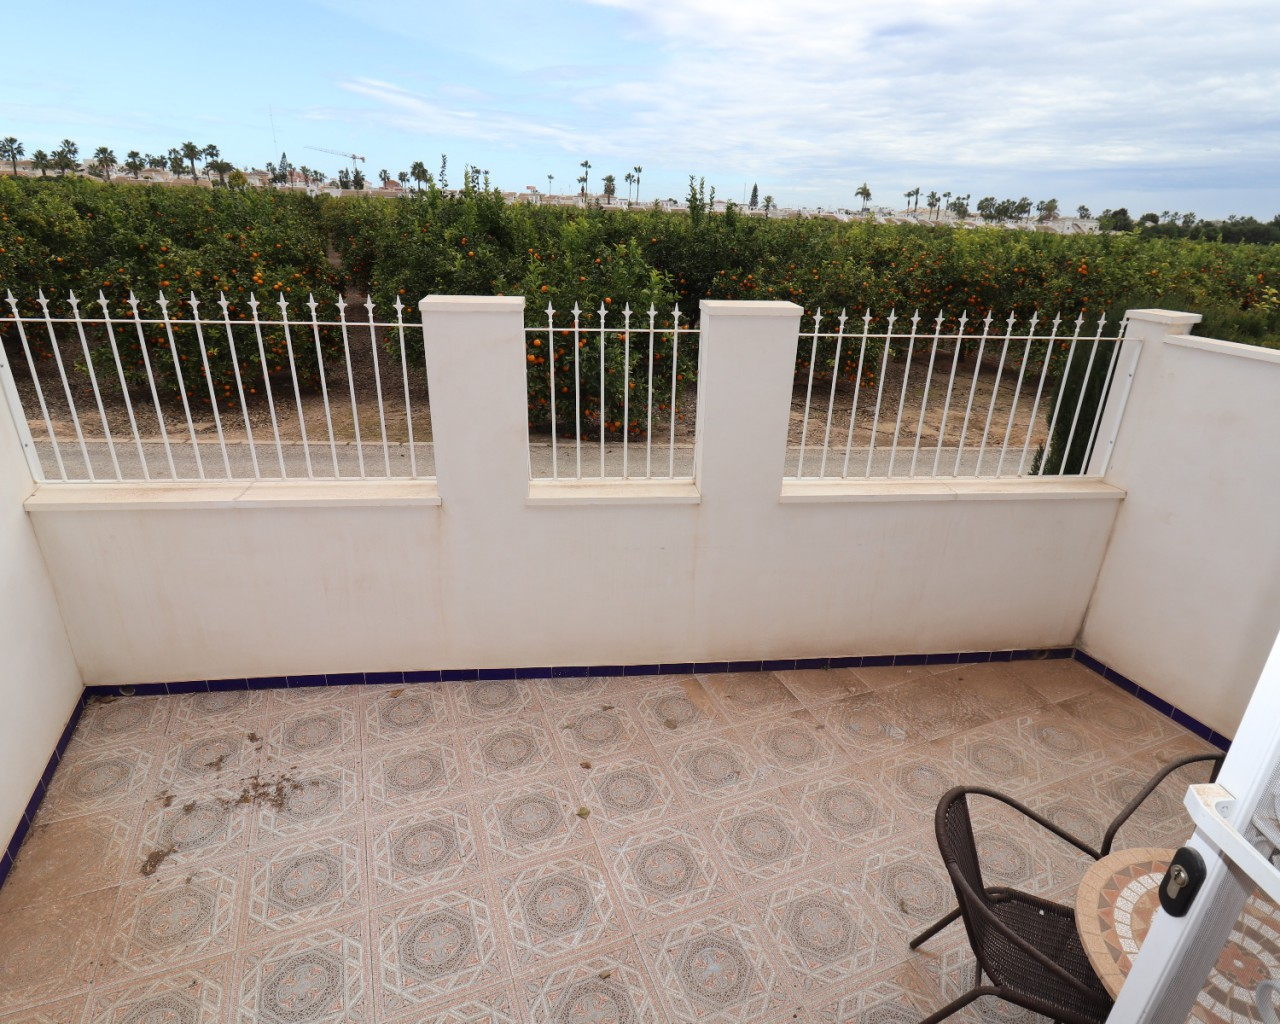 Sale - Townhouse - Ciudad Quesada - Doña Pepa